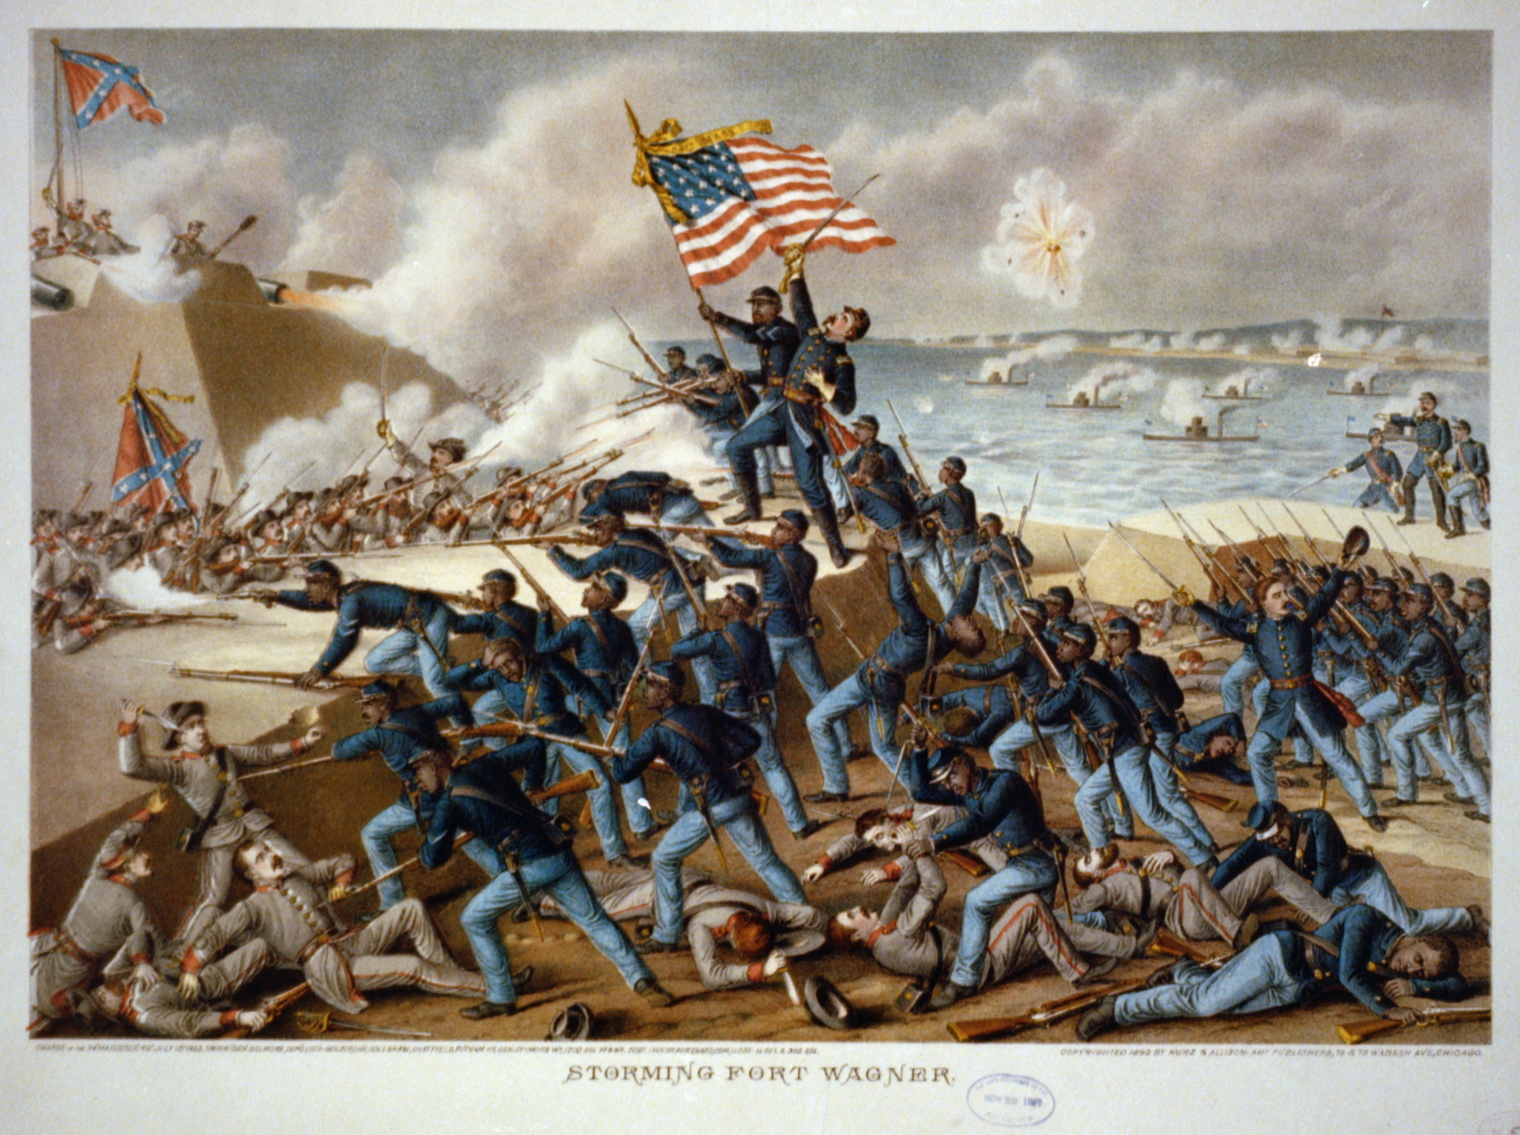 """54th Massachusetts Volunteer Infantry Regiment """"Storming Fort Wagner"""" by Kurz and Allison [Public domain], (Library of Congress), via Wikimedia Commons."""